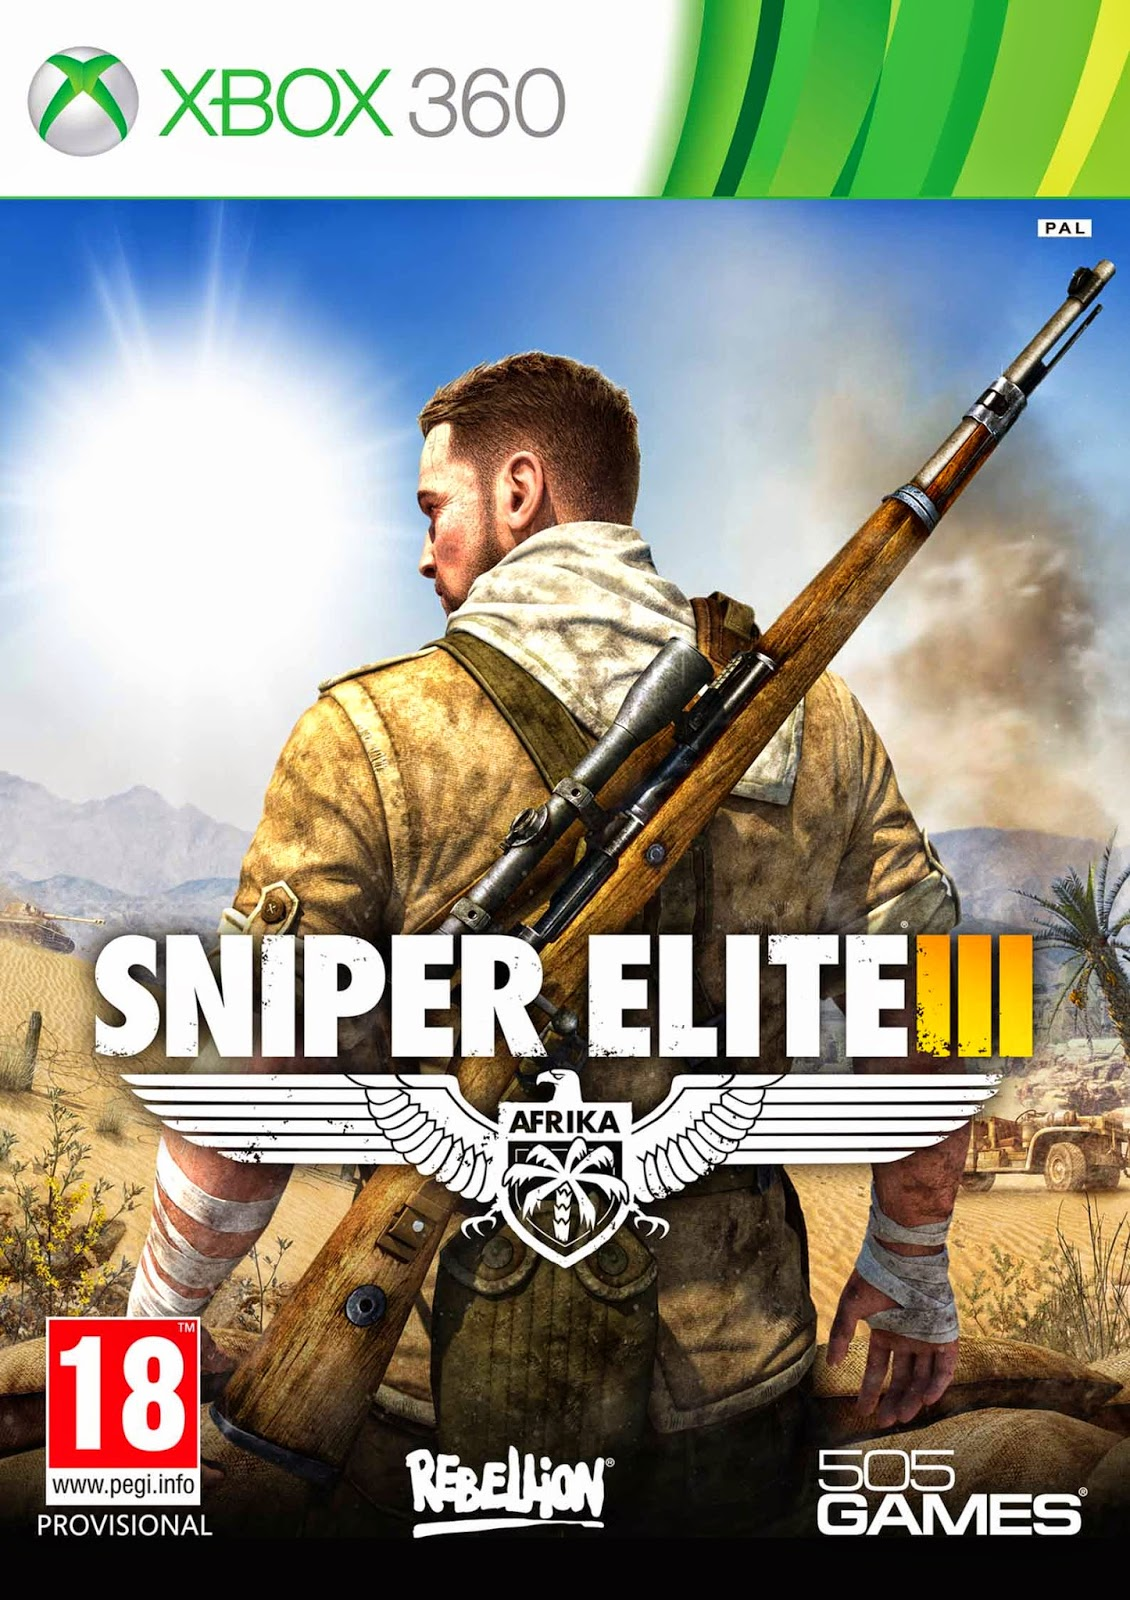 Sniper Elite 3 – Xbox 360 PT-BR Torrent